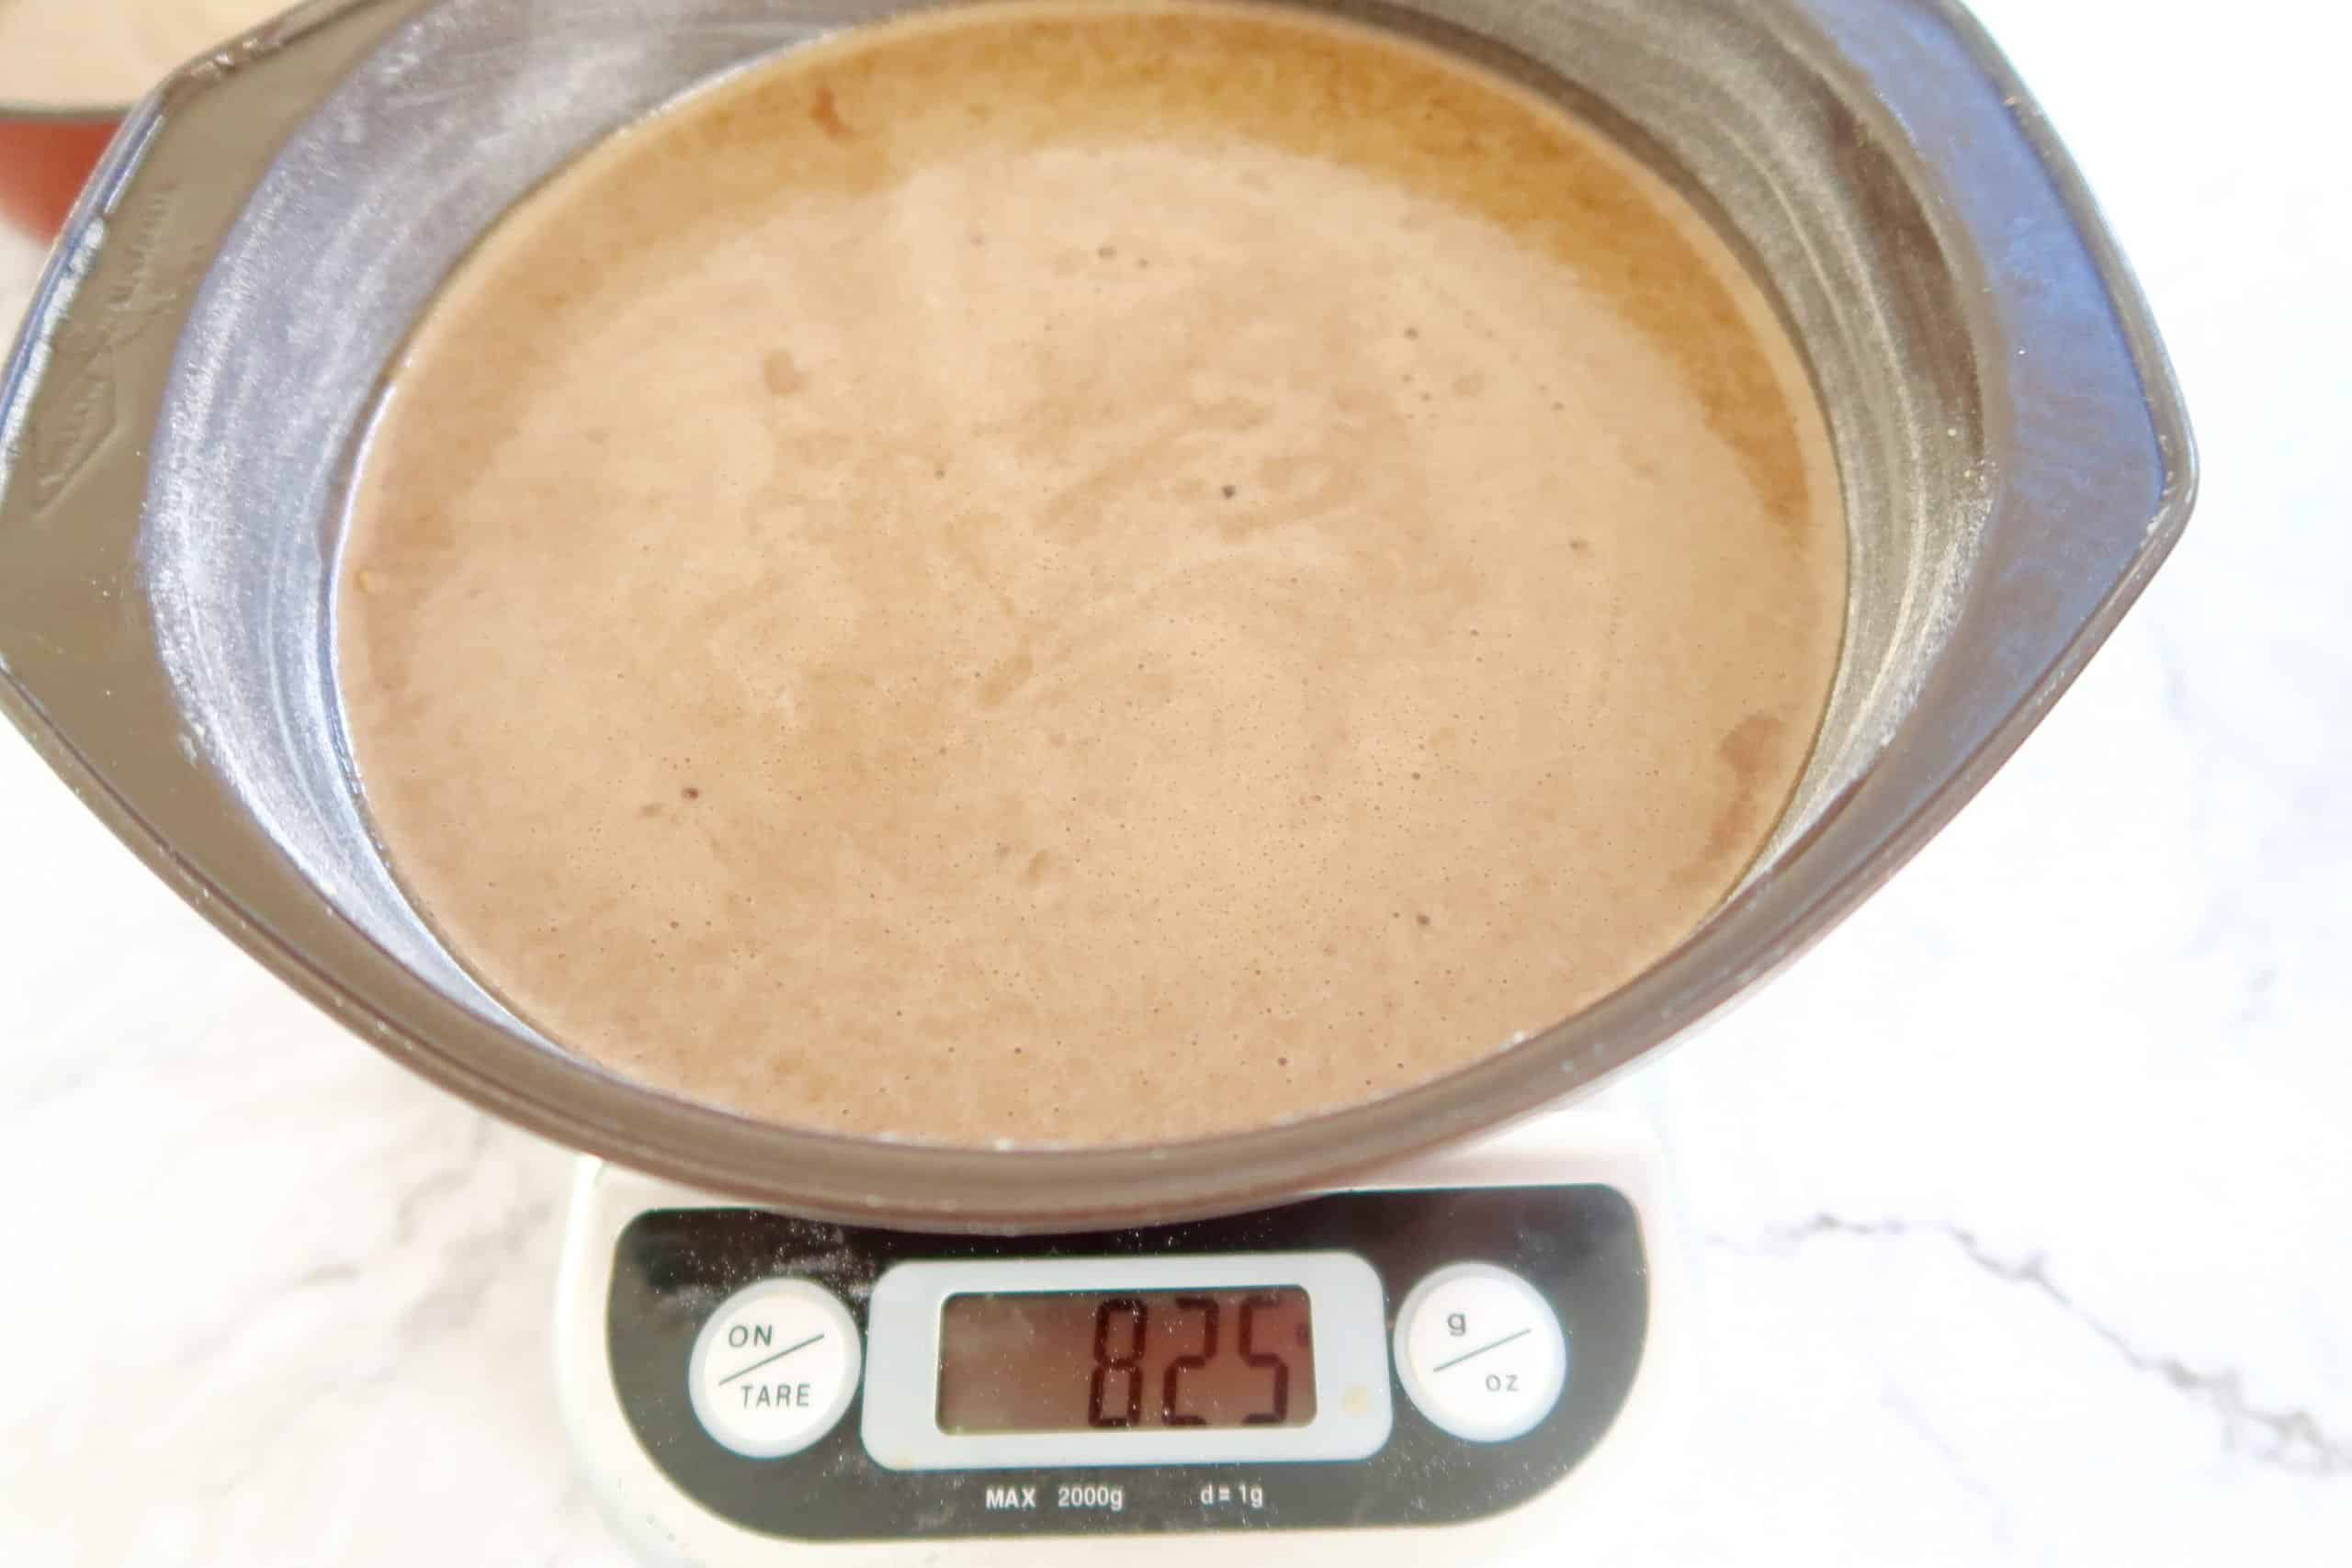 easy moist chocolate cake with buttercream icing batter in cake tin and sitting on a scale to measure the weight of the batter